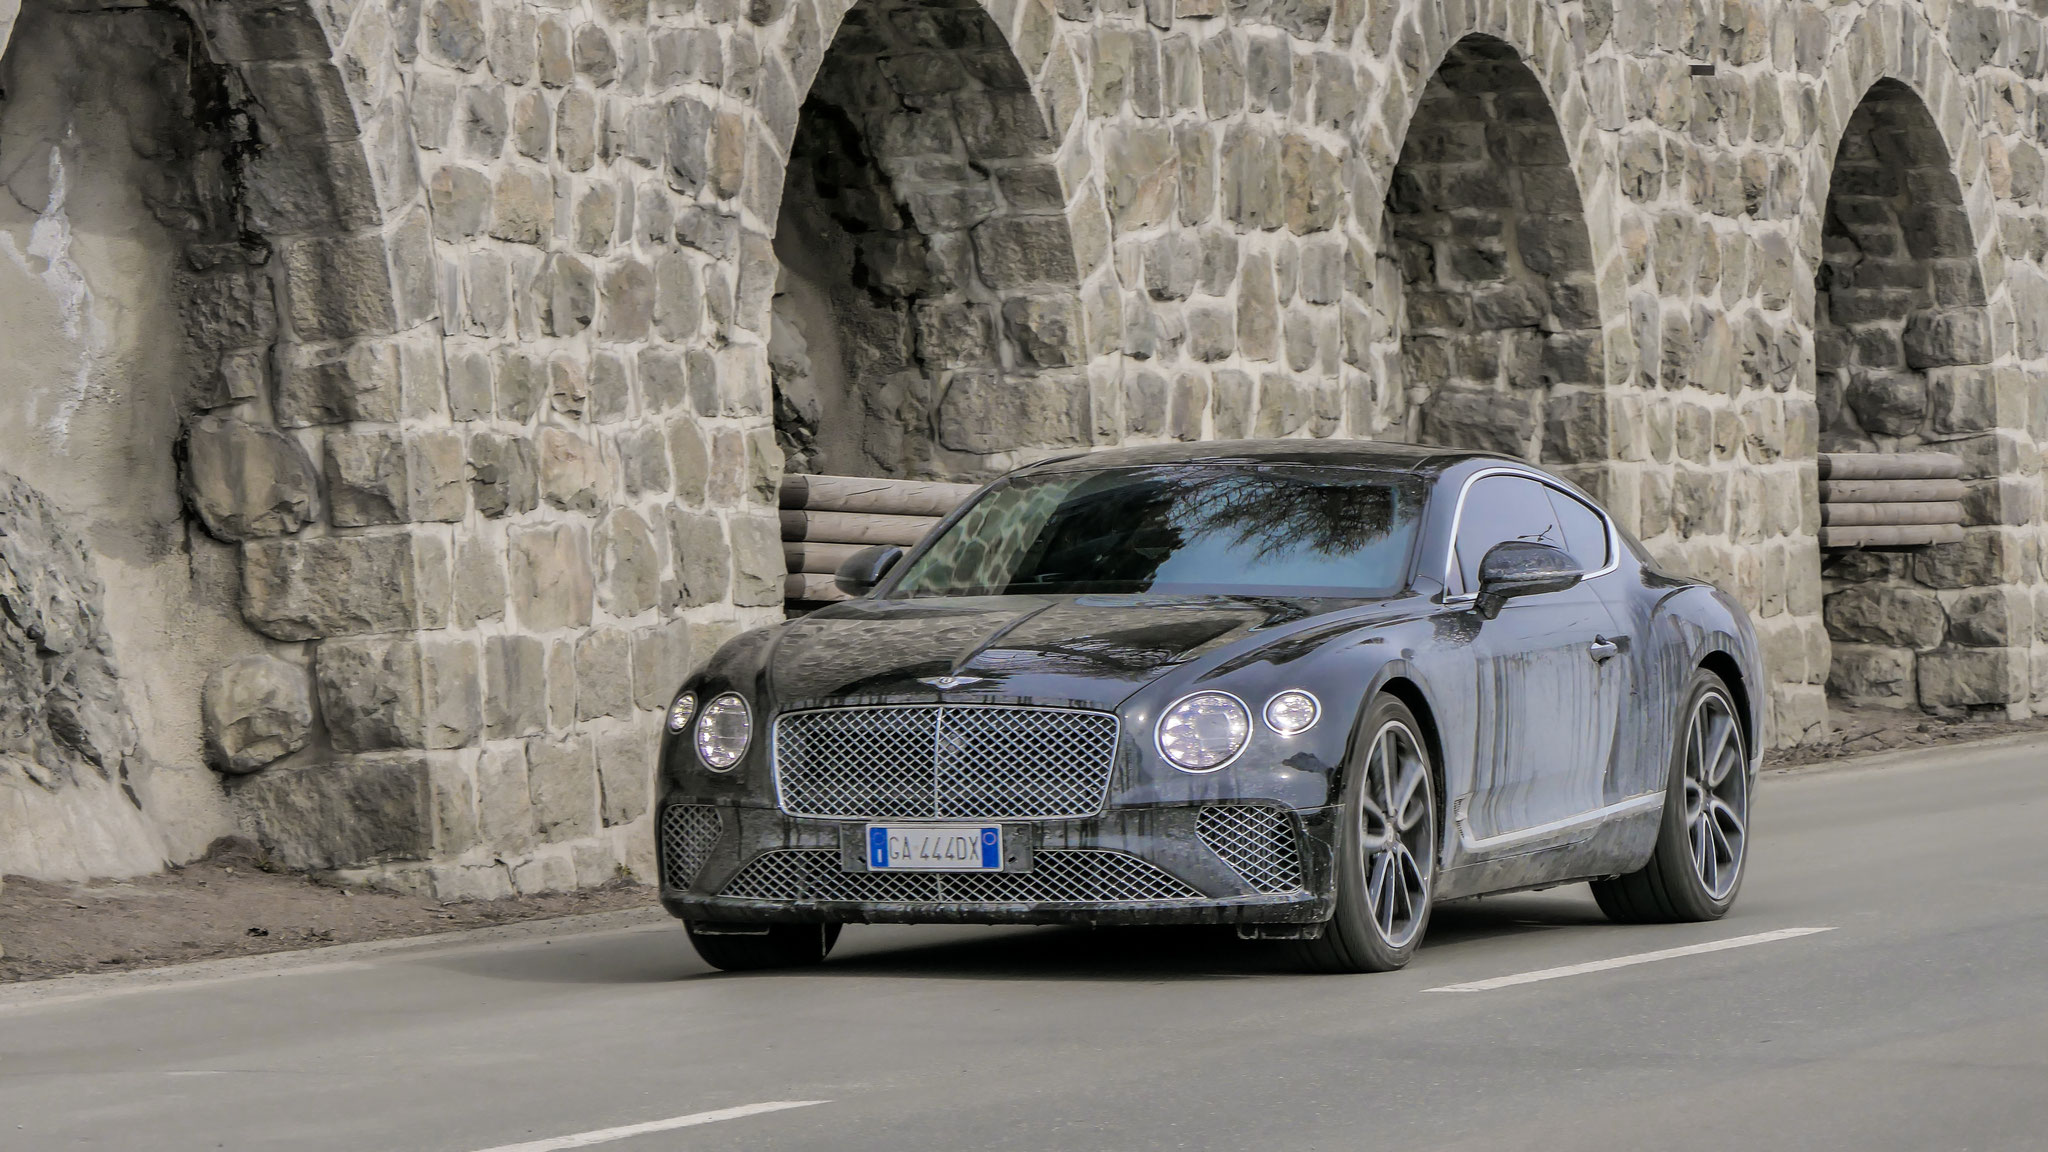 Bentley Continental GT - GA-444-DX (ITA)